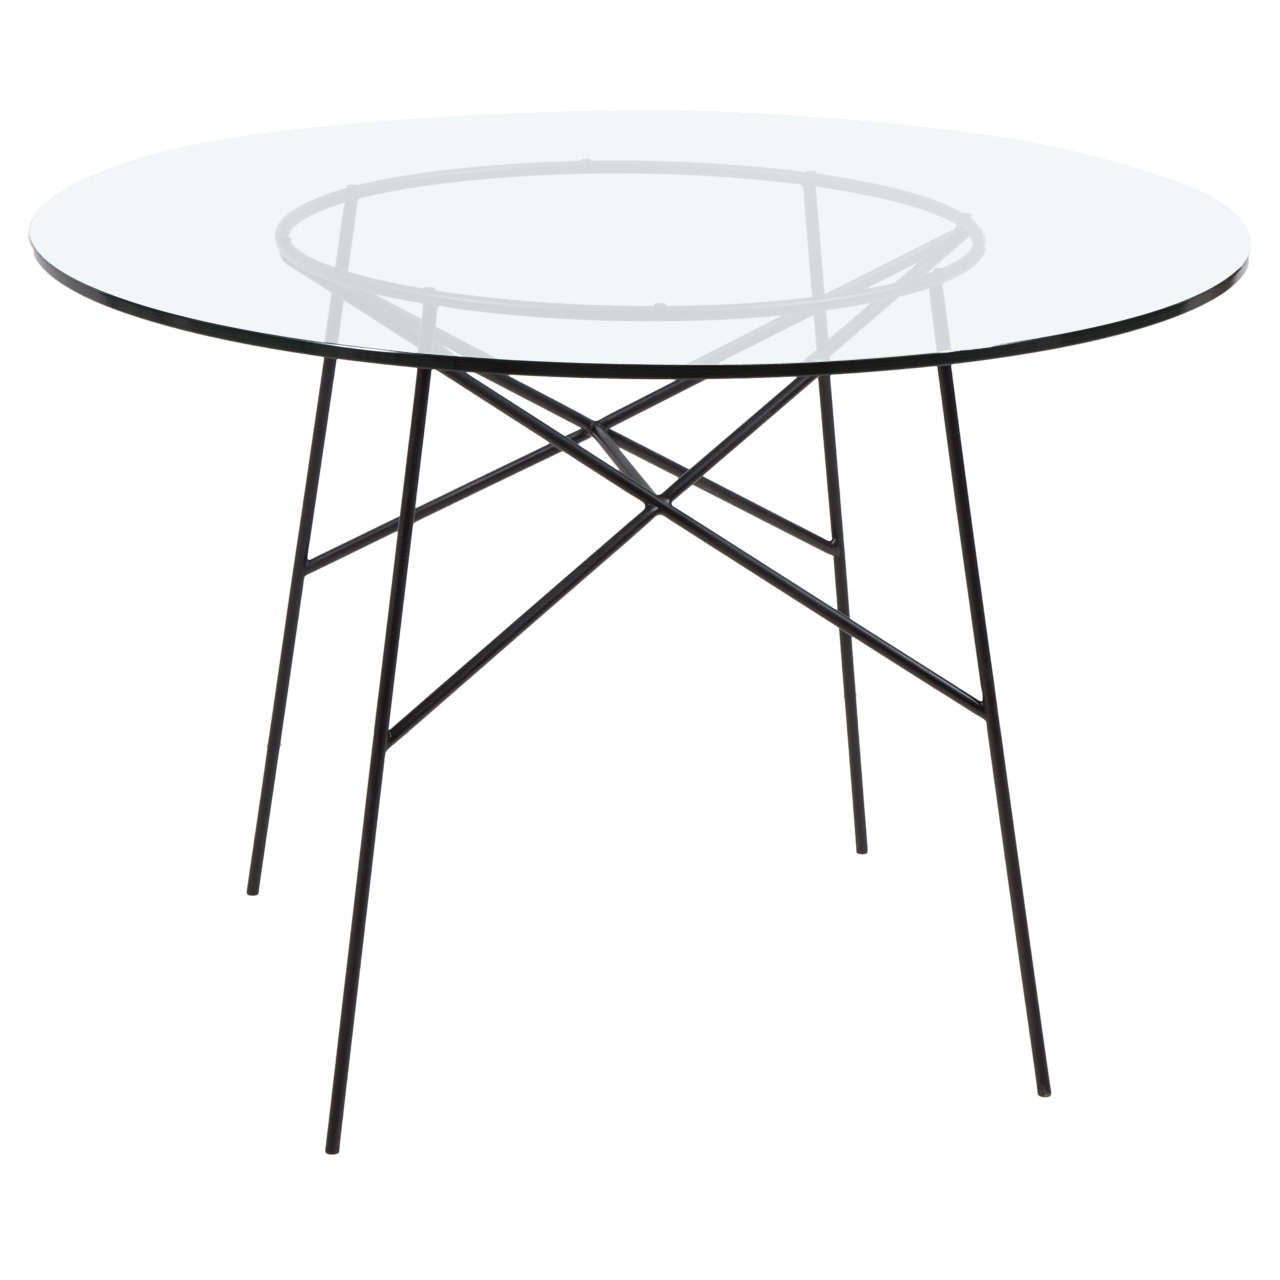 Roy wire frame iron dining table for sale at 1stdibs for Dining table frame